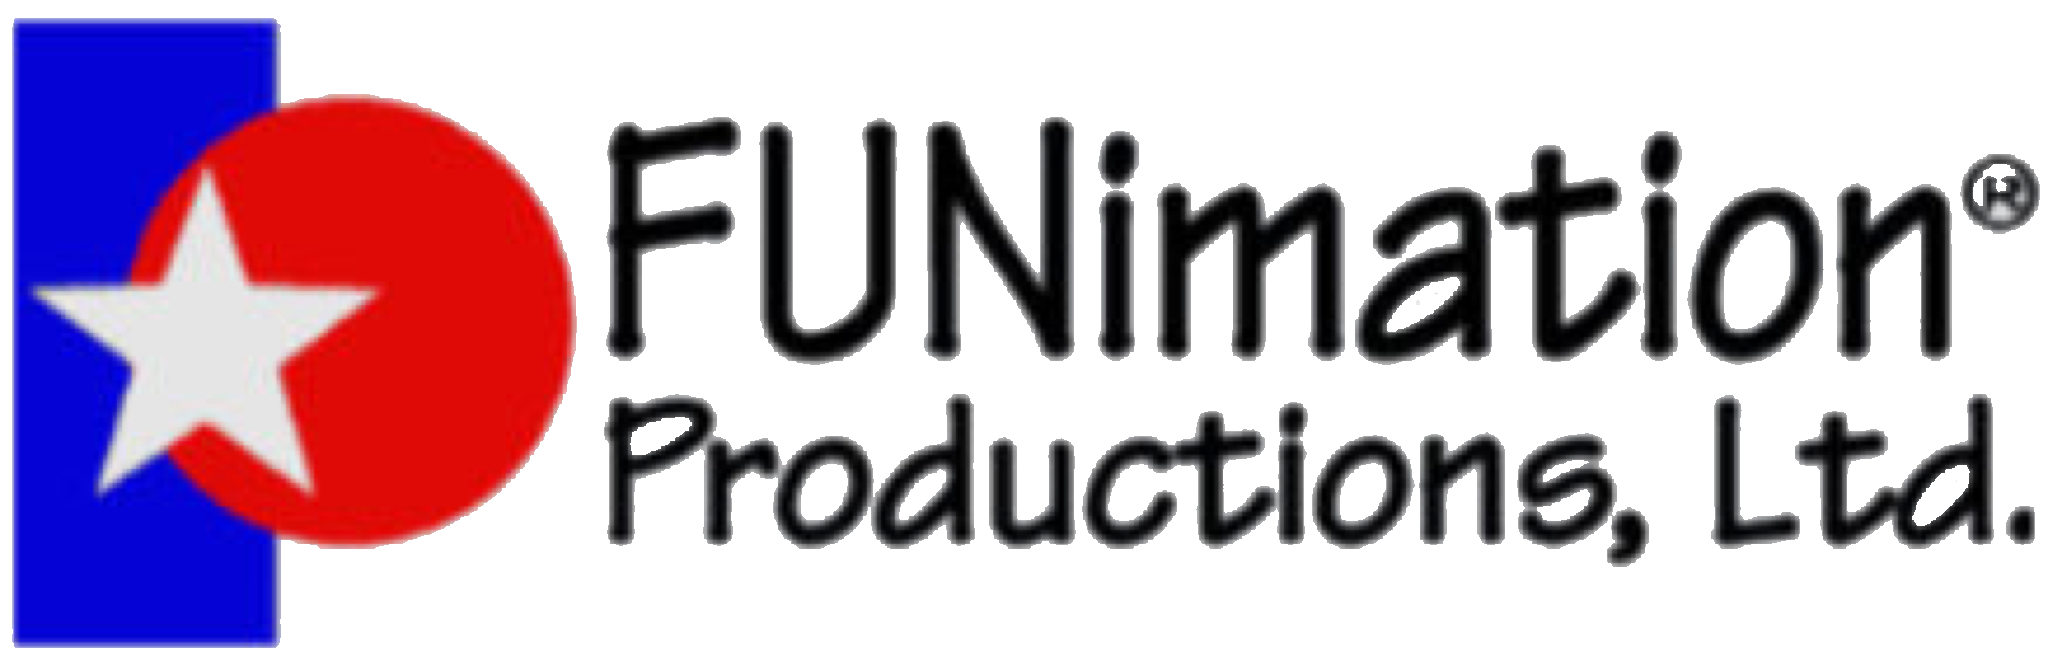 File:Funimation Old Logo.png.